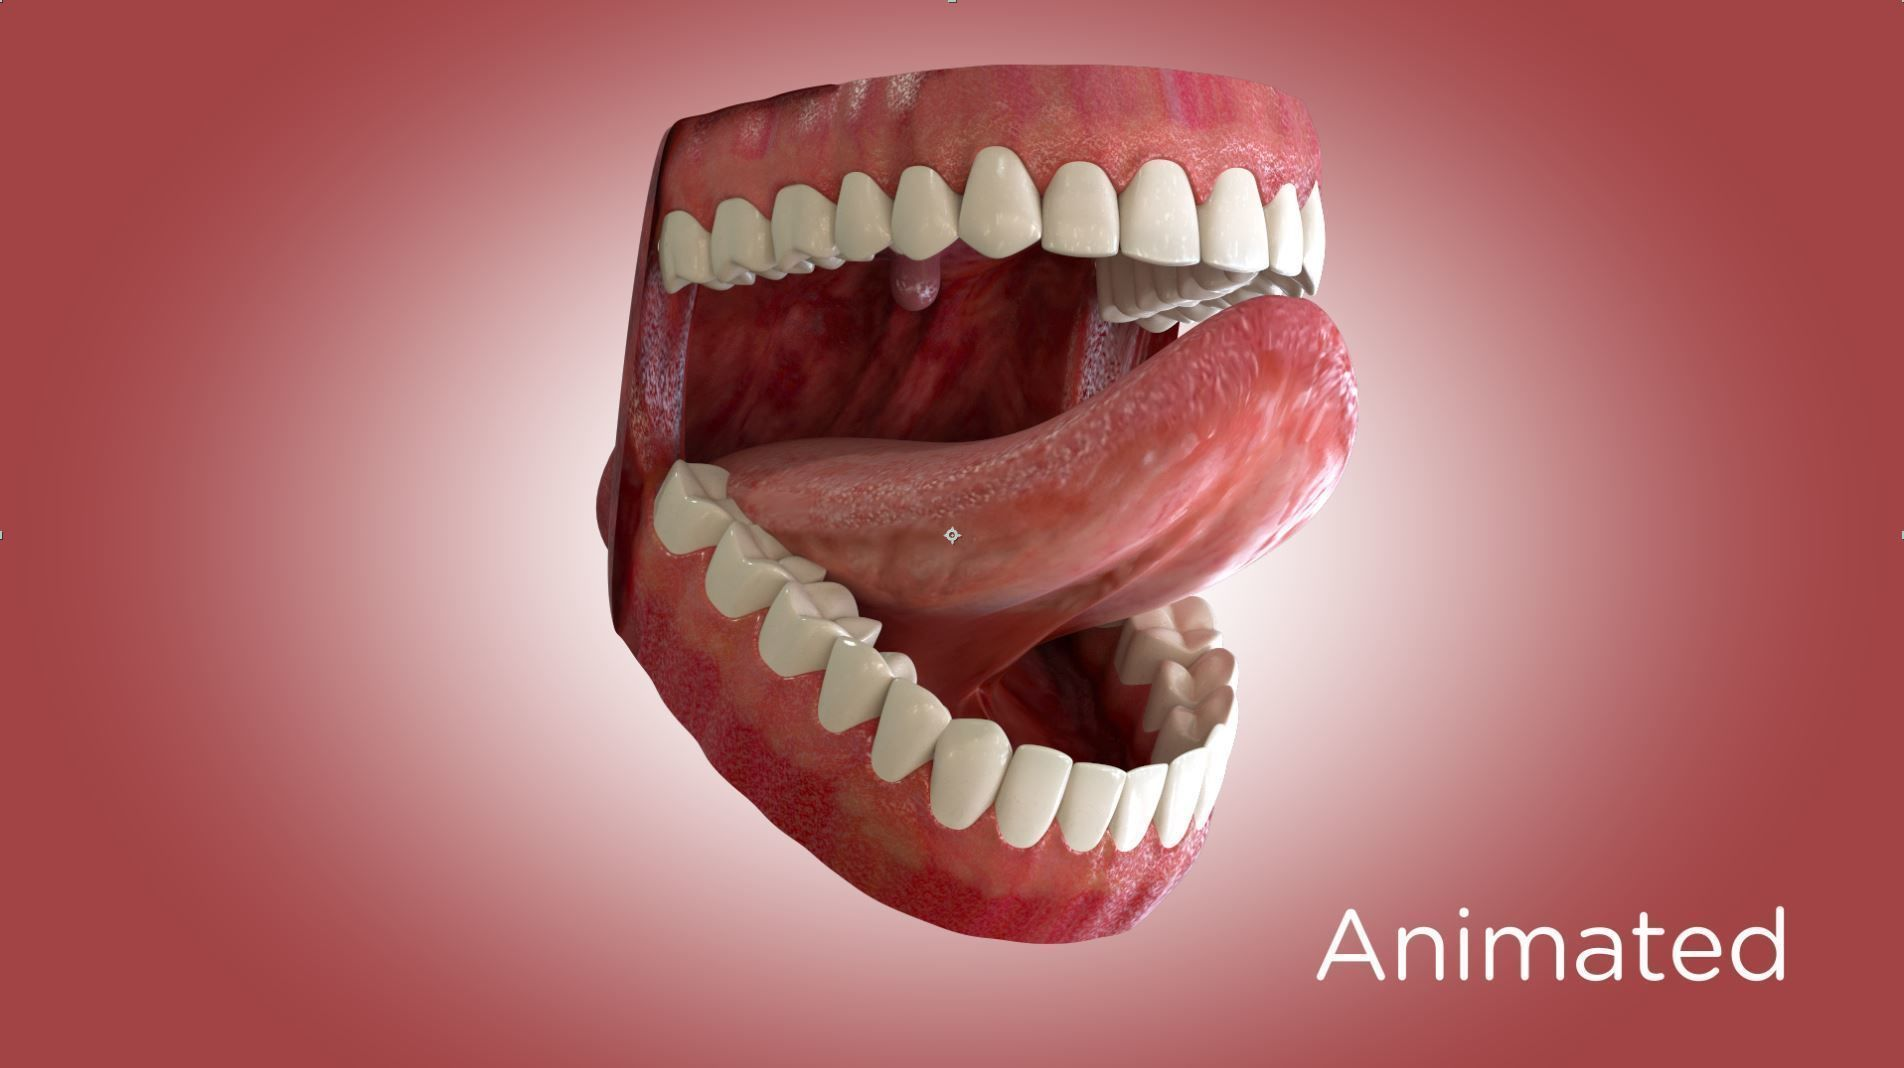 Teeth and Mouth